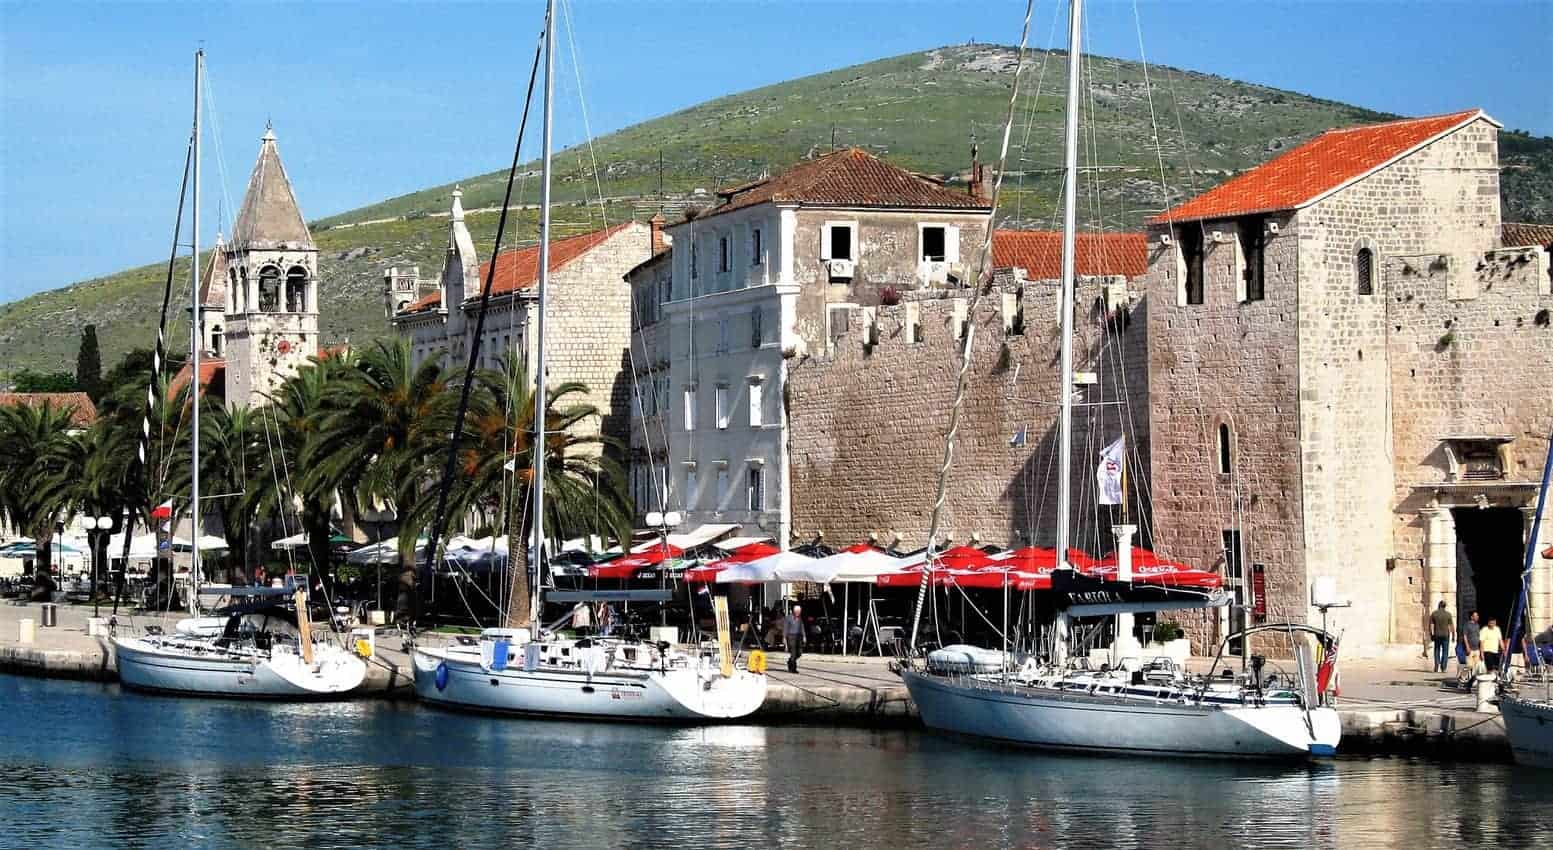 Trogir Croatia, walled town built on an island and a UNESCO World Heritage site.